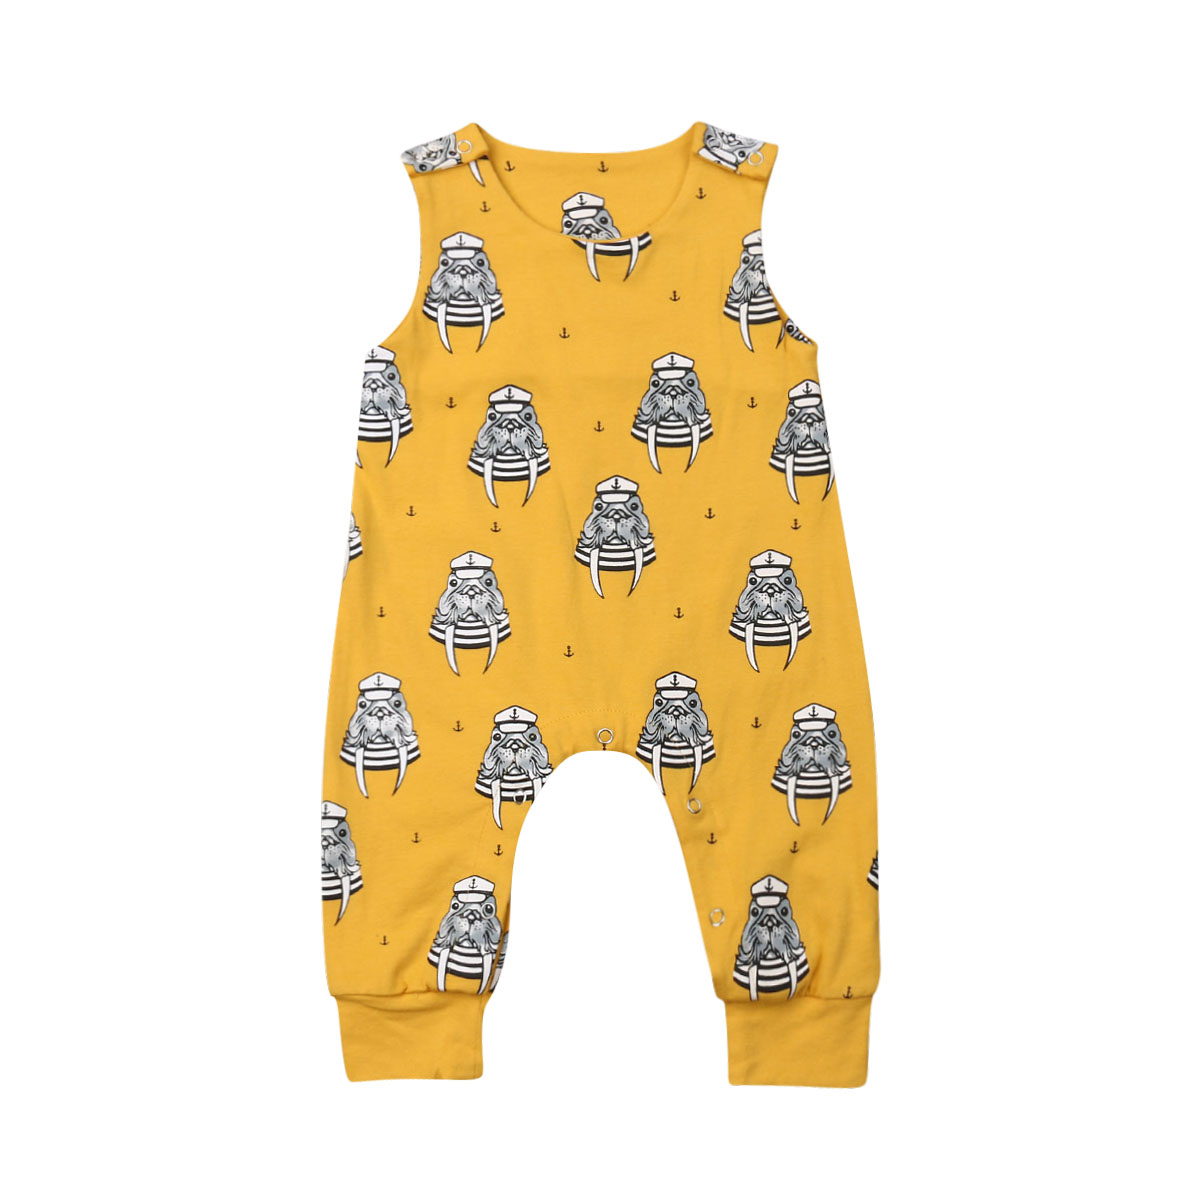 Cotton Newborn Baby Boy Girl Sleeveless Cartoon Animal Loose Casual   Romper   Jumpsuit One Pieces Summer Clothes